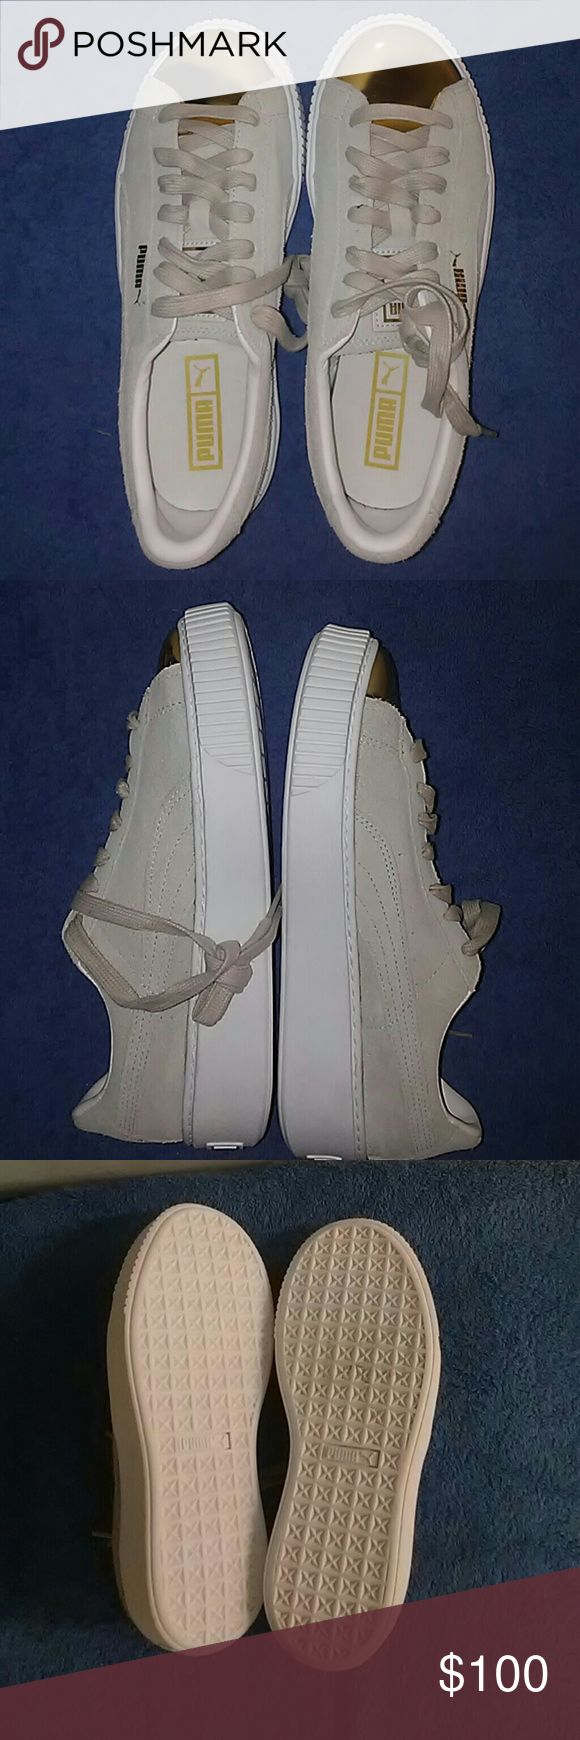 Womens Puma White Suede Rihanna creeper  Size 8.5 Puma sneaker  Size 8.5 Brand new without box Gold/light Greg/white Rihanna designed shoe  *THIS IS YOUR CHANCE TO STEP INTO RIHANNA'S SHOE* puma Shoes Athletic Shoes